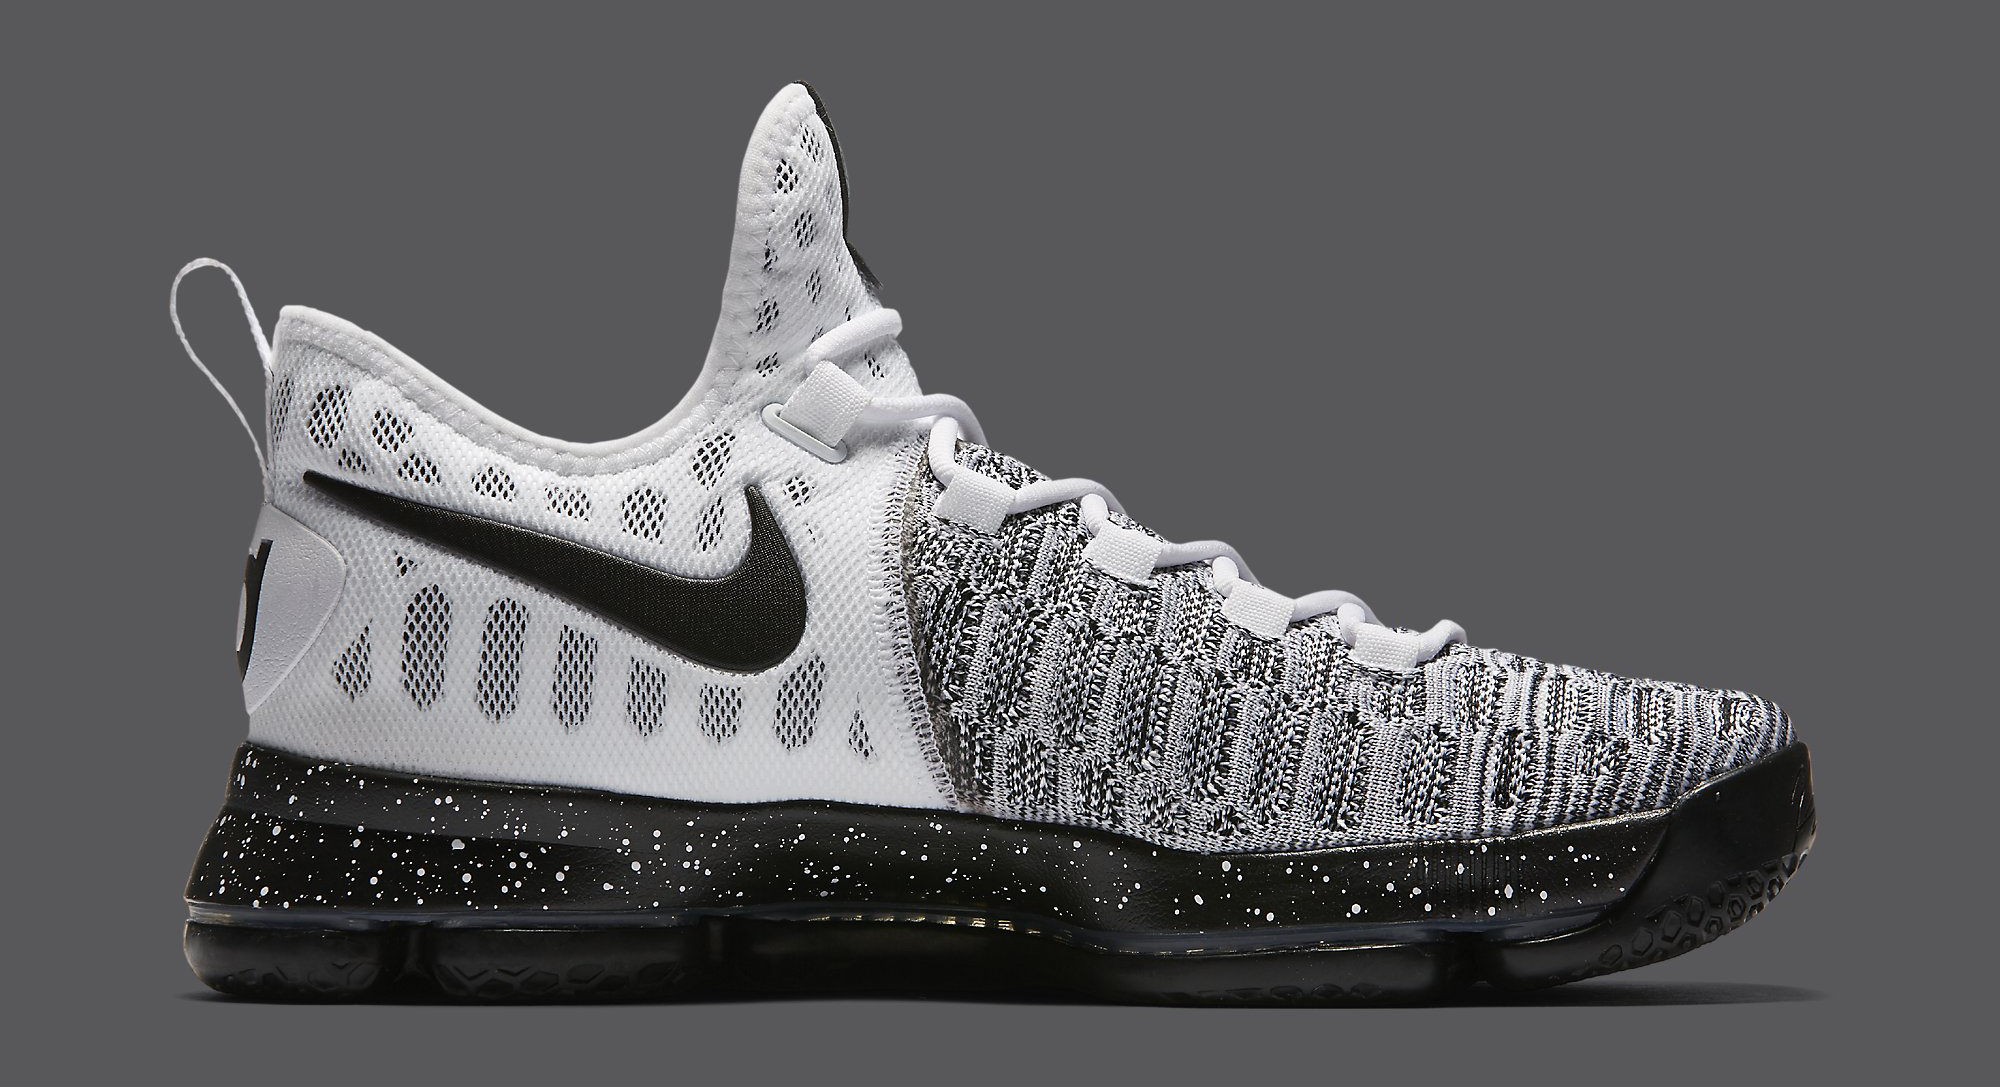 new styles 78319 3f472 Nike KD 9 Black White Oreo 843392-100 | Sole Collector